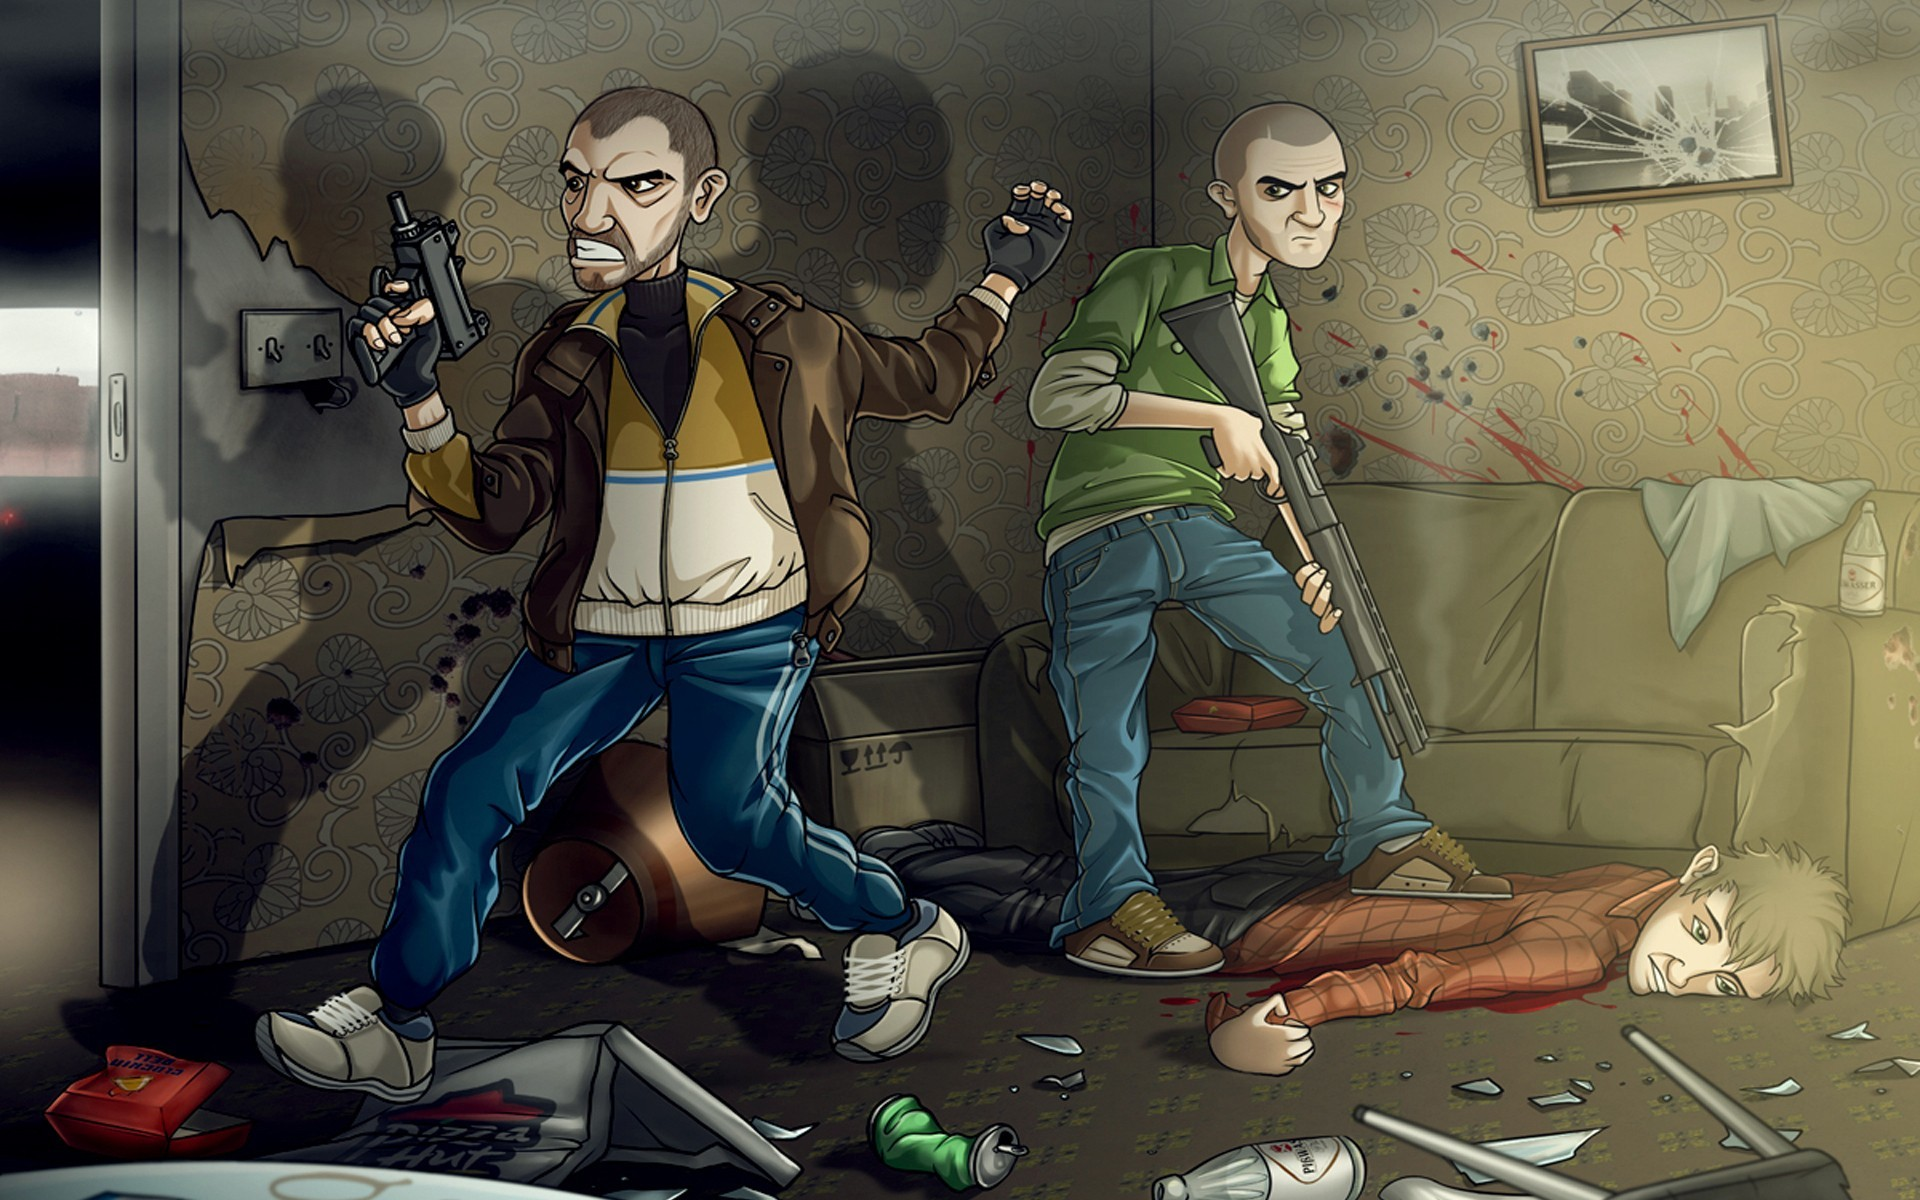 Res: 1920x1200, artwork character illustration fighting grand theft auto gta iv guns niko  bellic